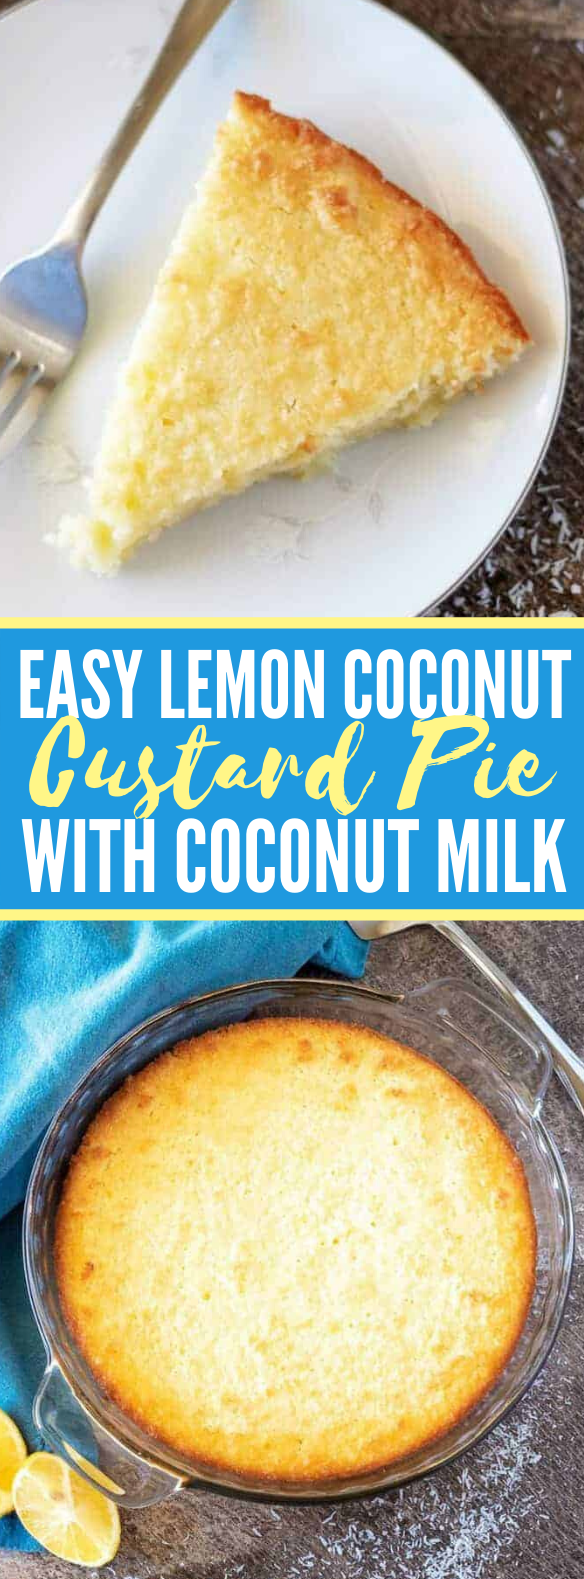 Easy Lemon Coconut Custard Pie with Coconut Milk #desserts #lowcarb